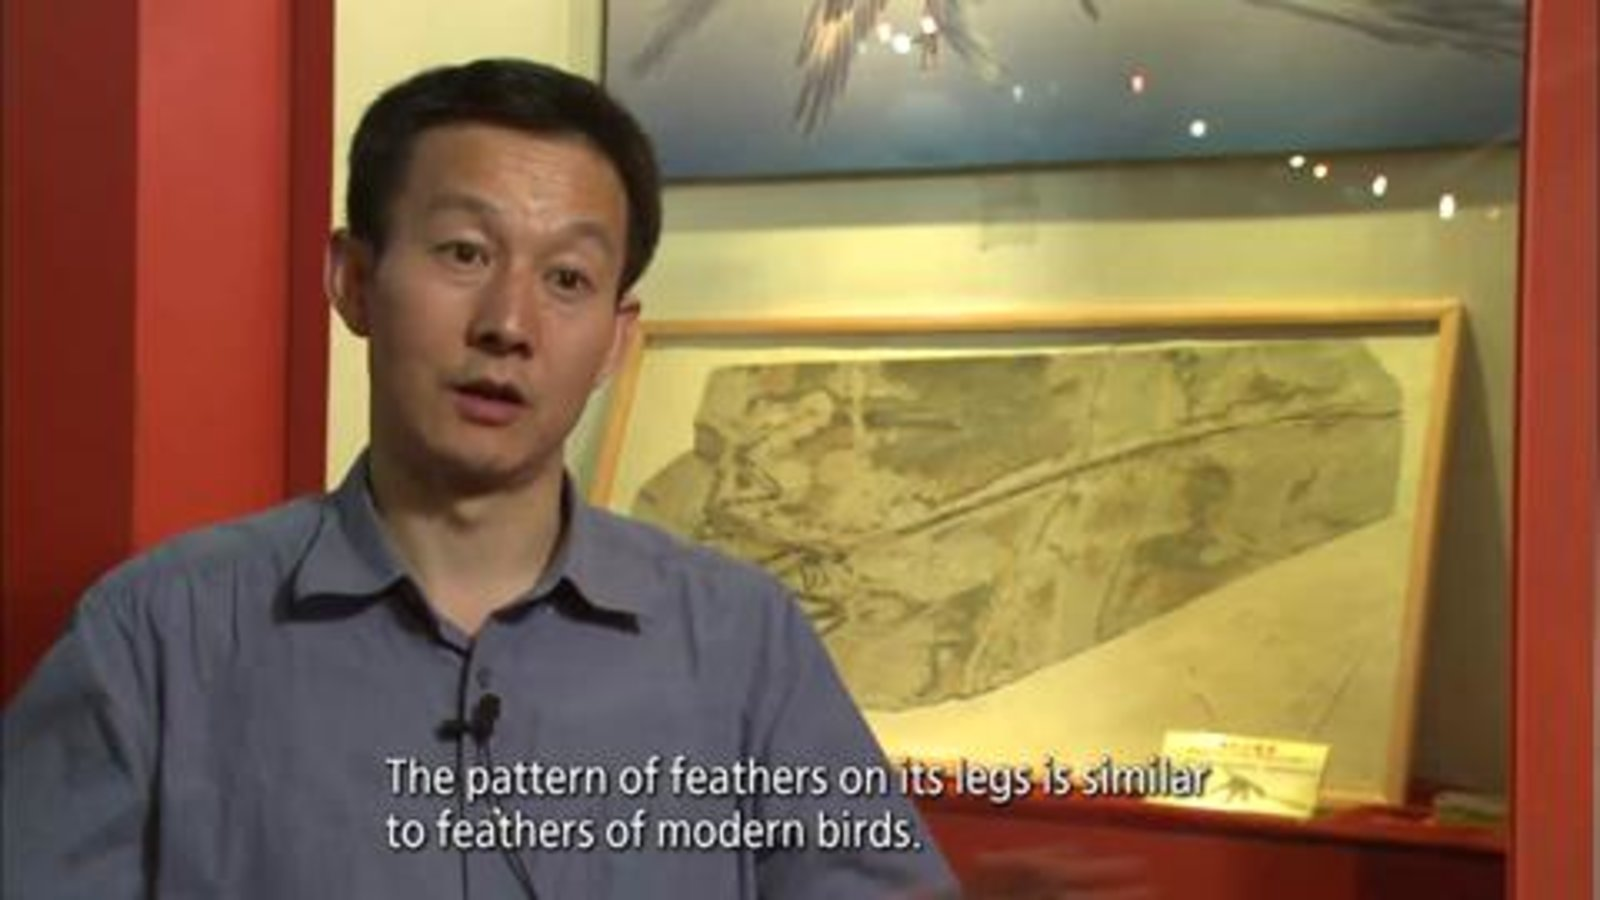 History Of Life: The Story of the Feather